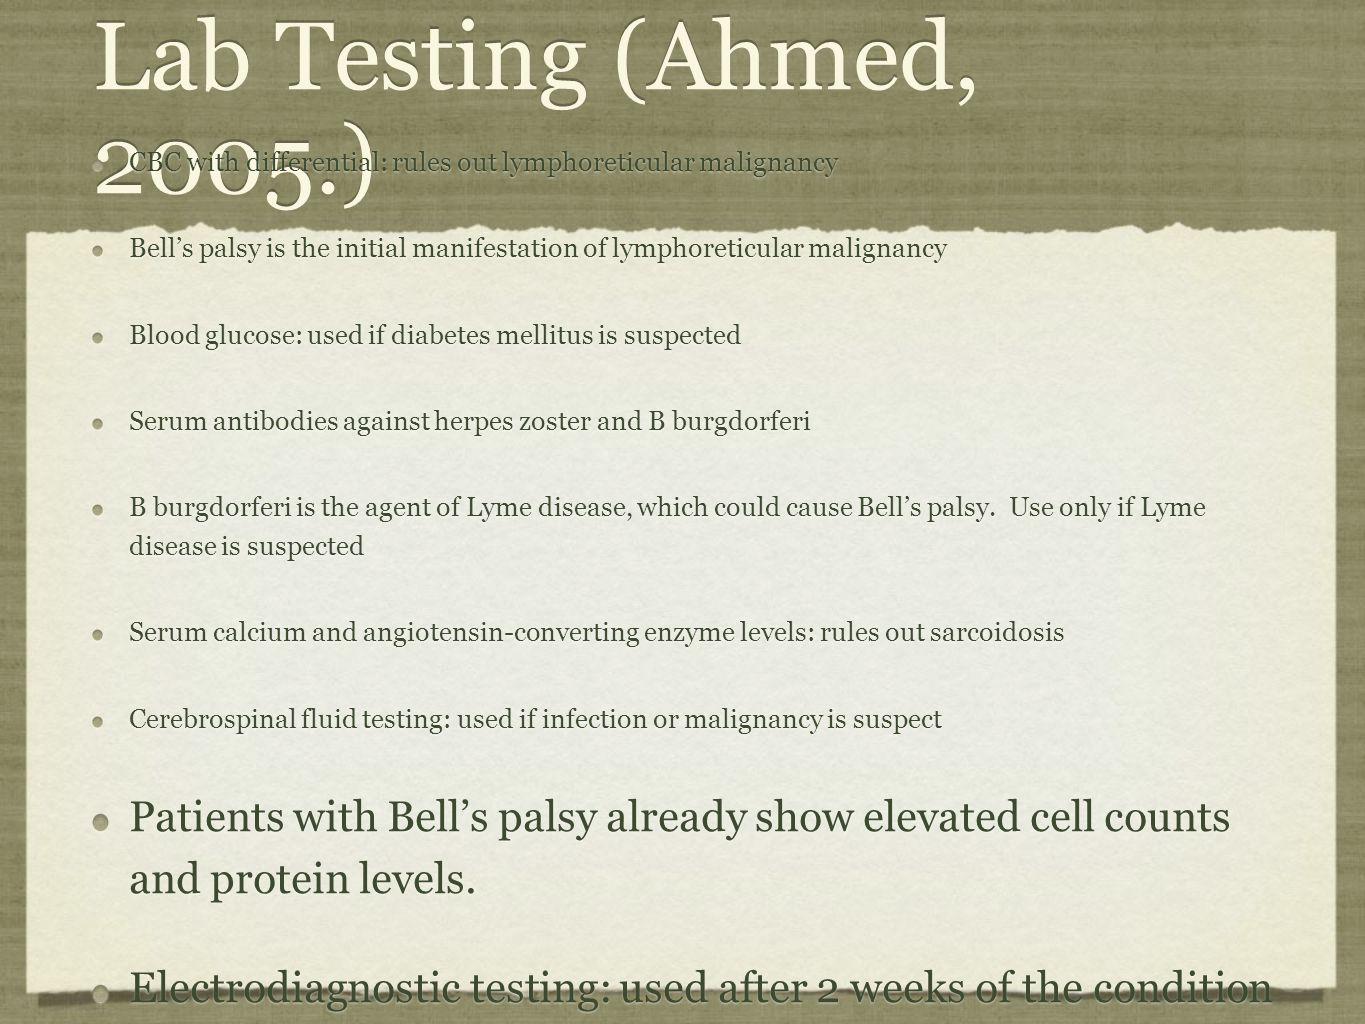 Lab Testing (Ahmed, 2005.) CBC with differential: rules out lymphoreticular malignancy.